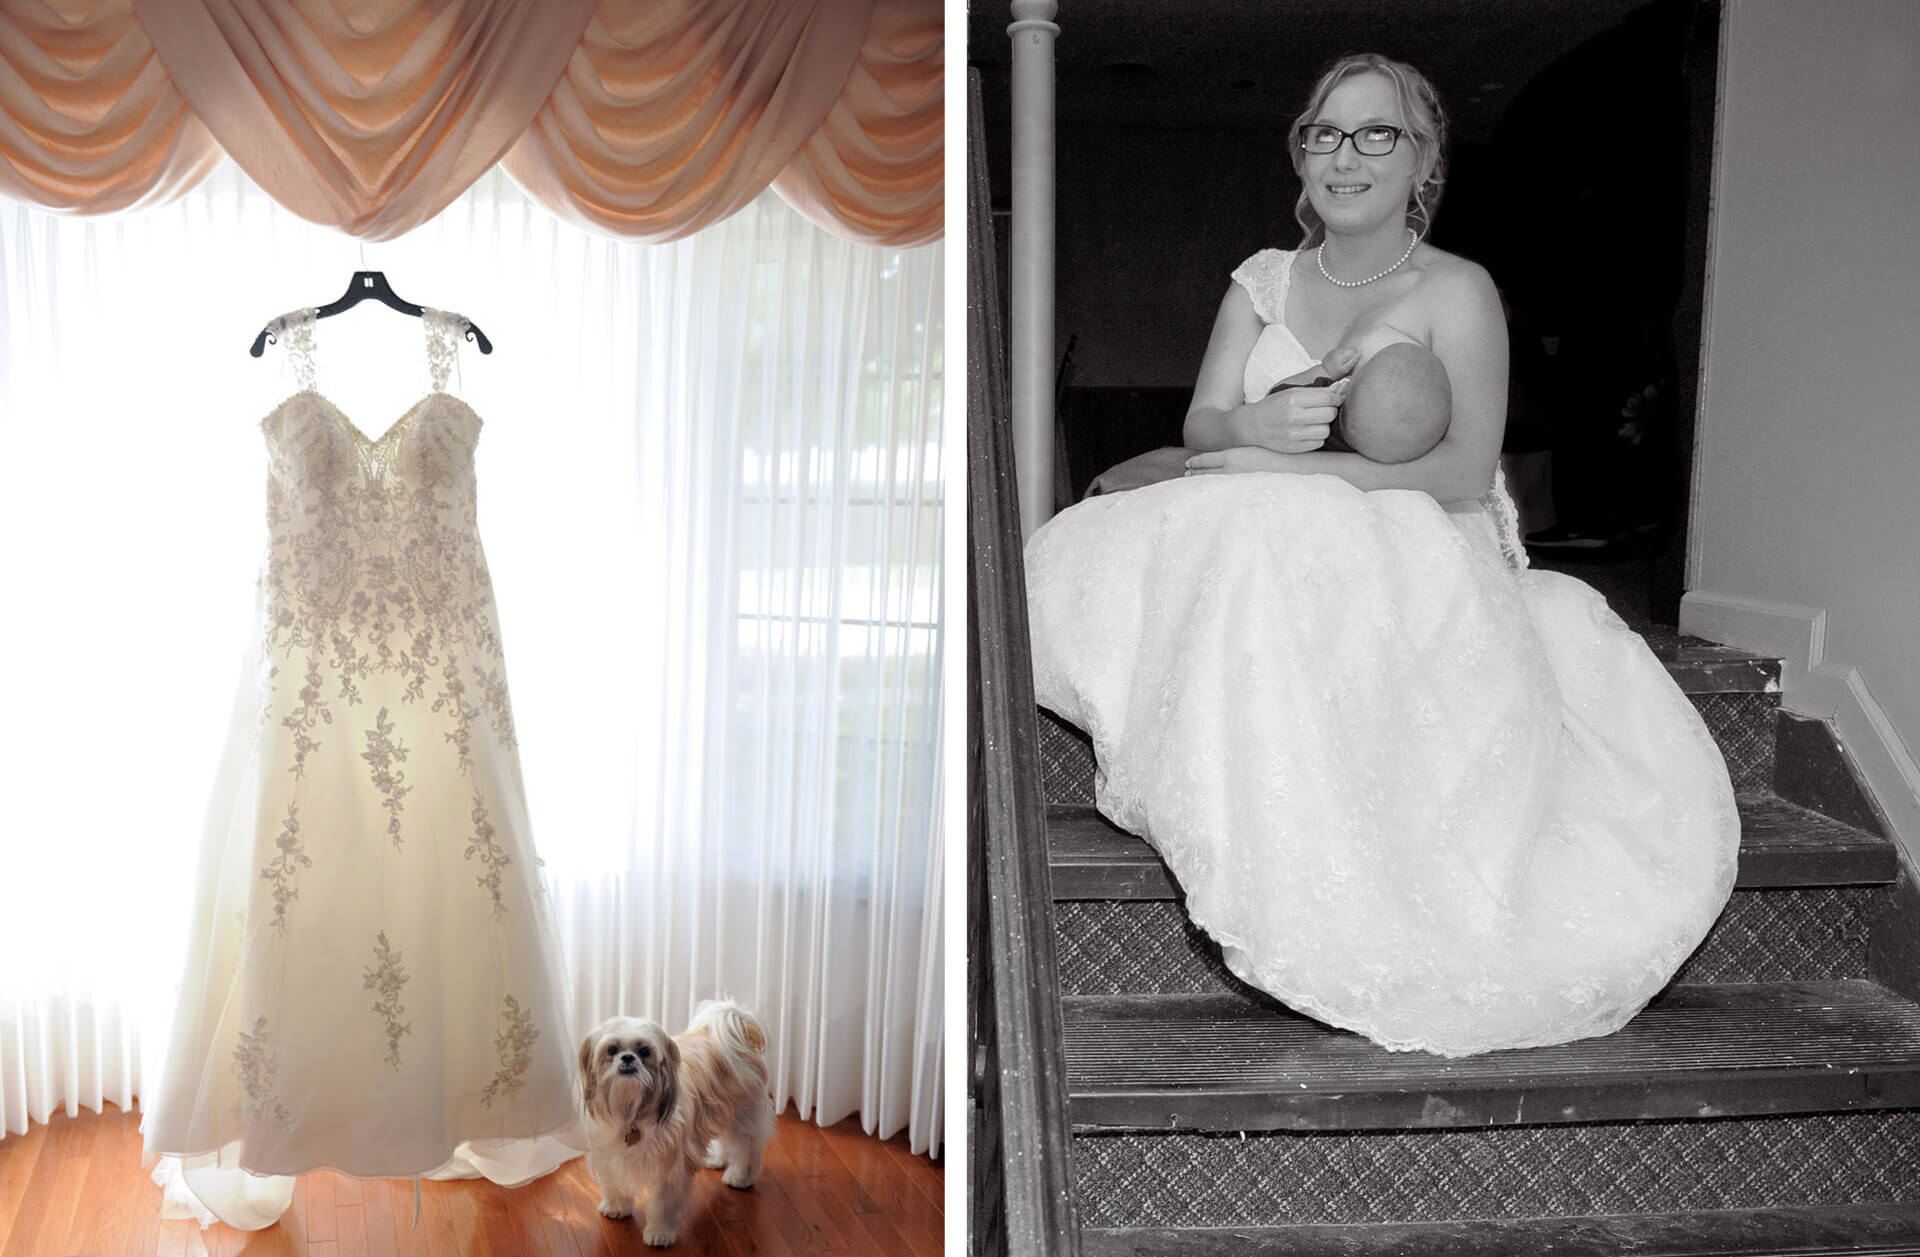 Capturing fleeting moments during weddings is my forte as an affordable wedding photojournalist. These two photos of a dog wandering into the dress photo and a bride nursing her baby on the back steps during her wedding reception are two examples of wedding photojournalism.